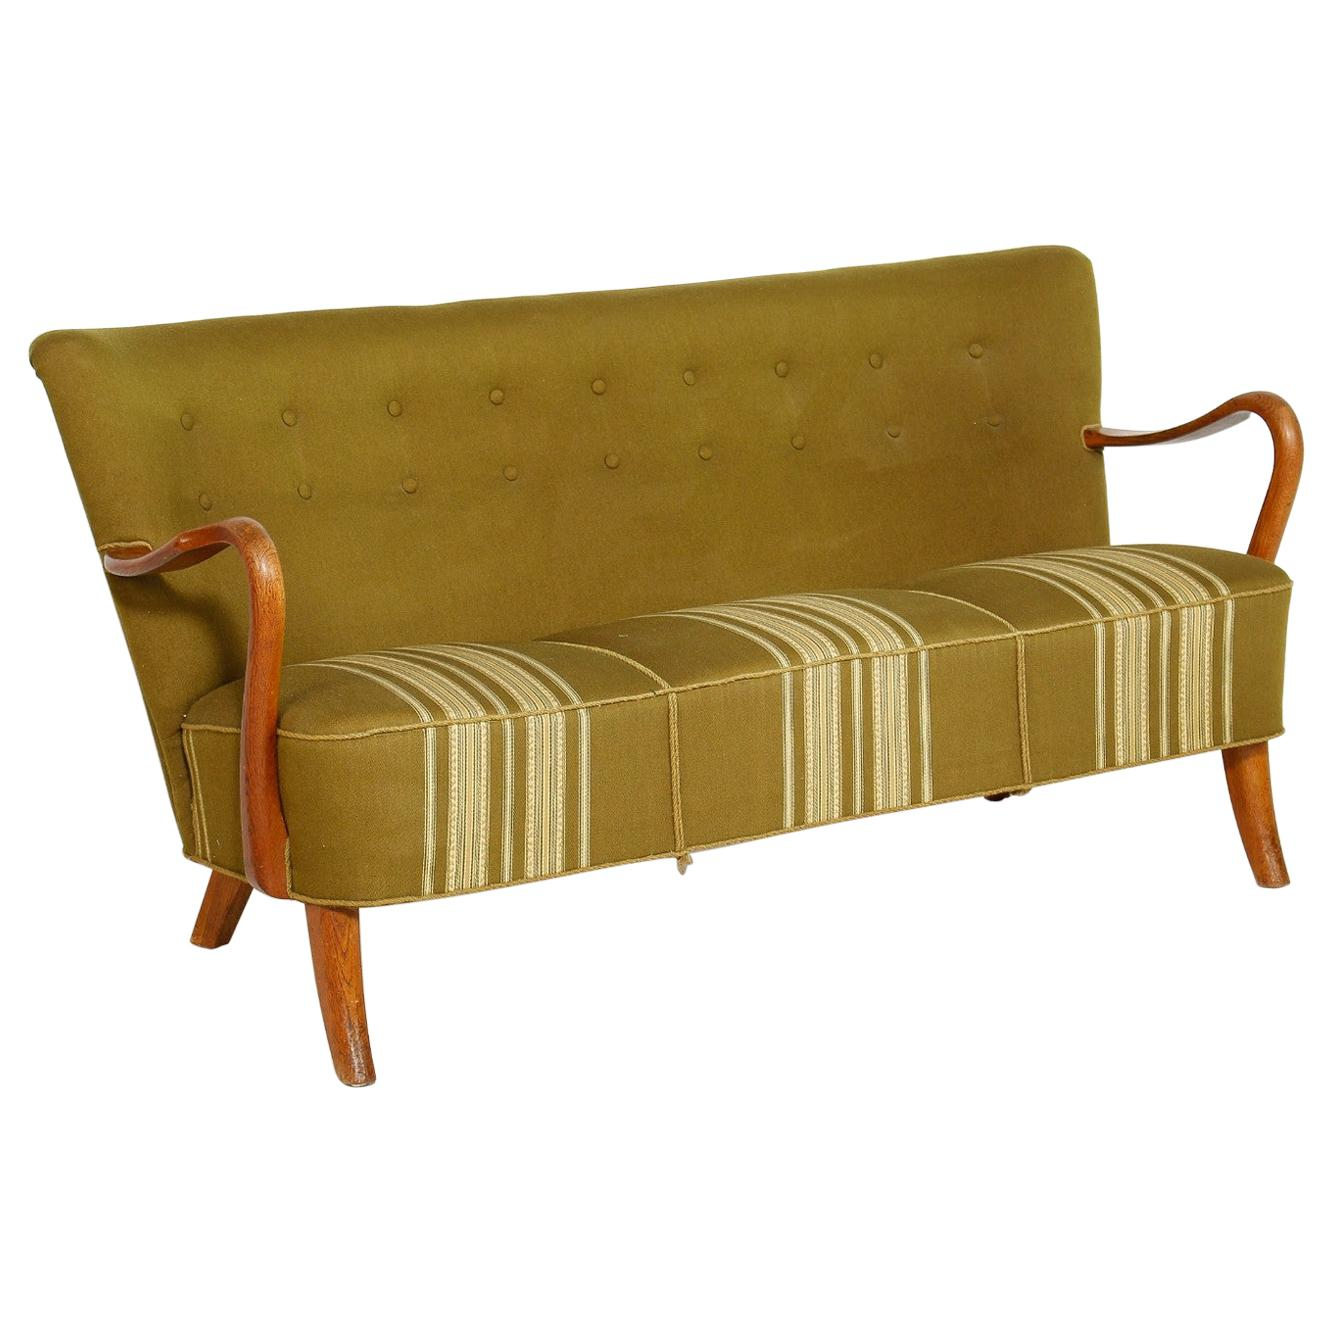 Danish Midcentury 1940s Sofa with Open Armrests by Alfred Christensen